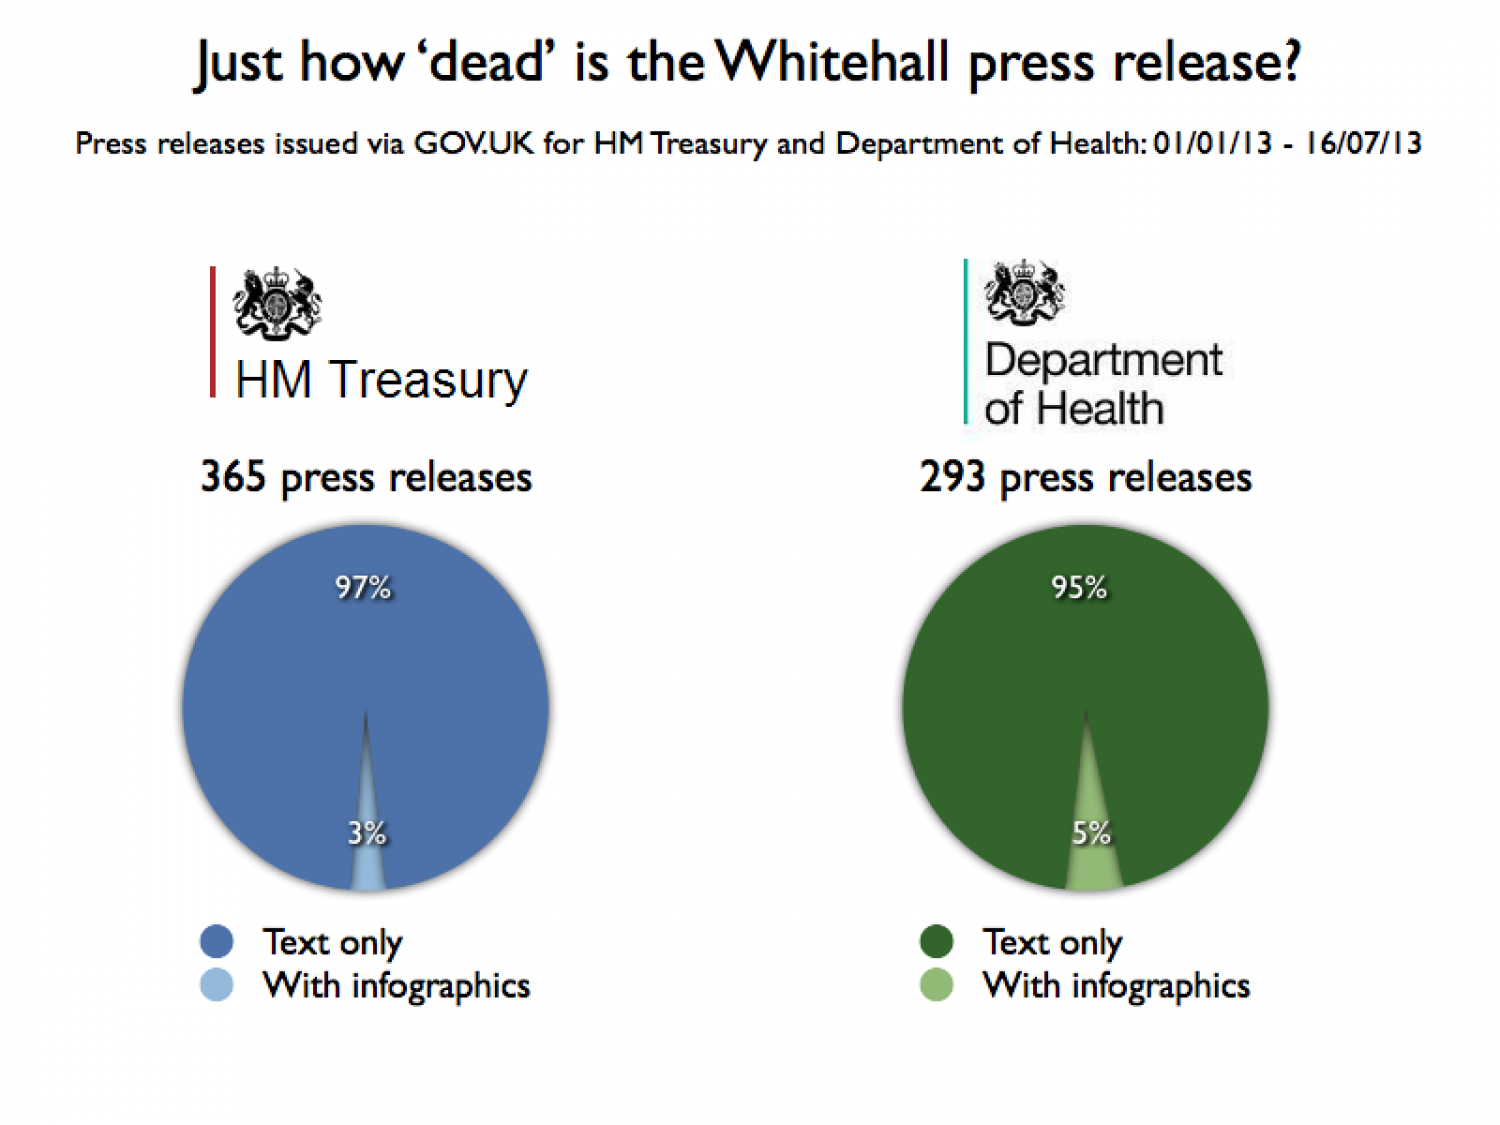 Just how 'dead' is the Whitehall press release? Infographic